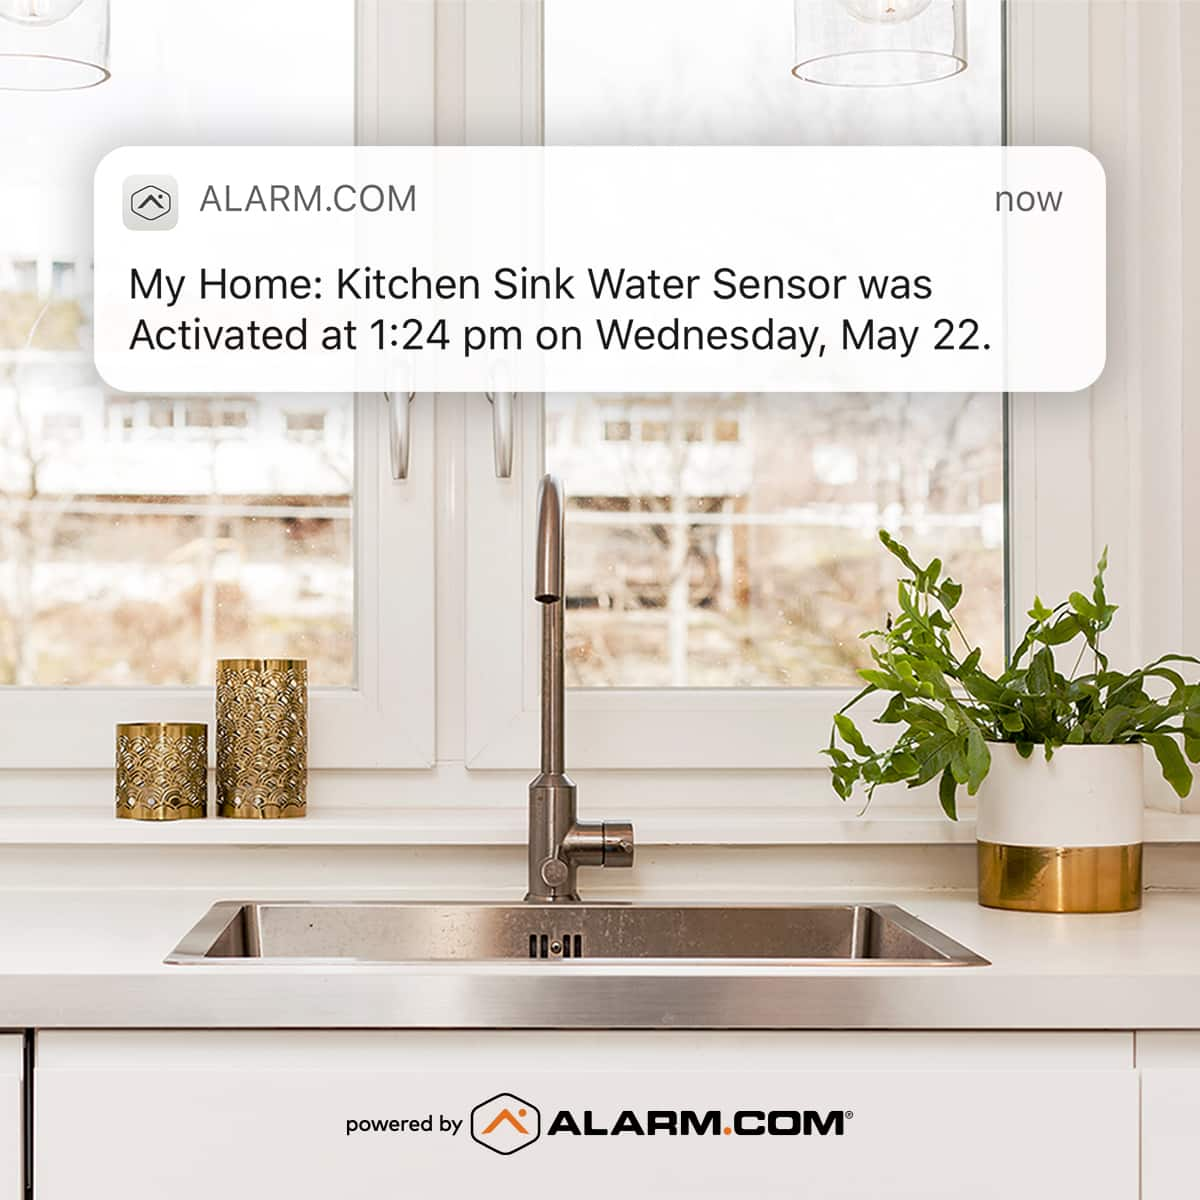 Smart Home Security System Buying Guide - Smart Water Sensor